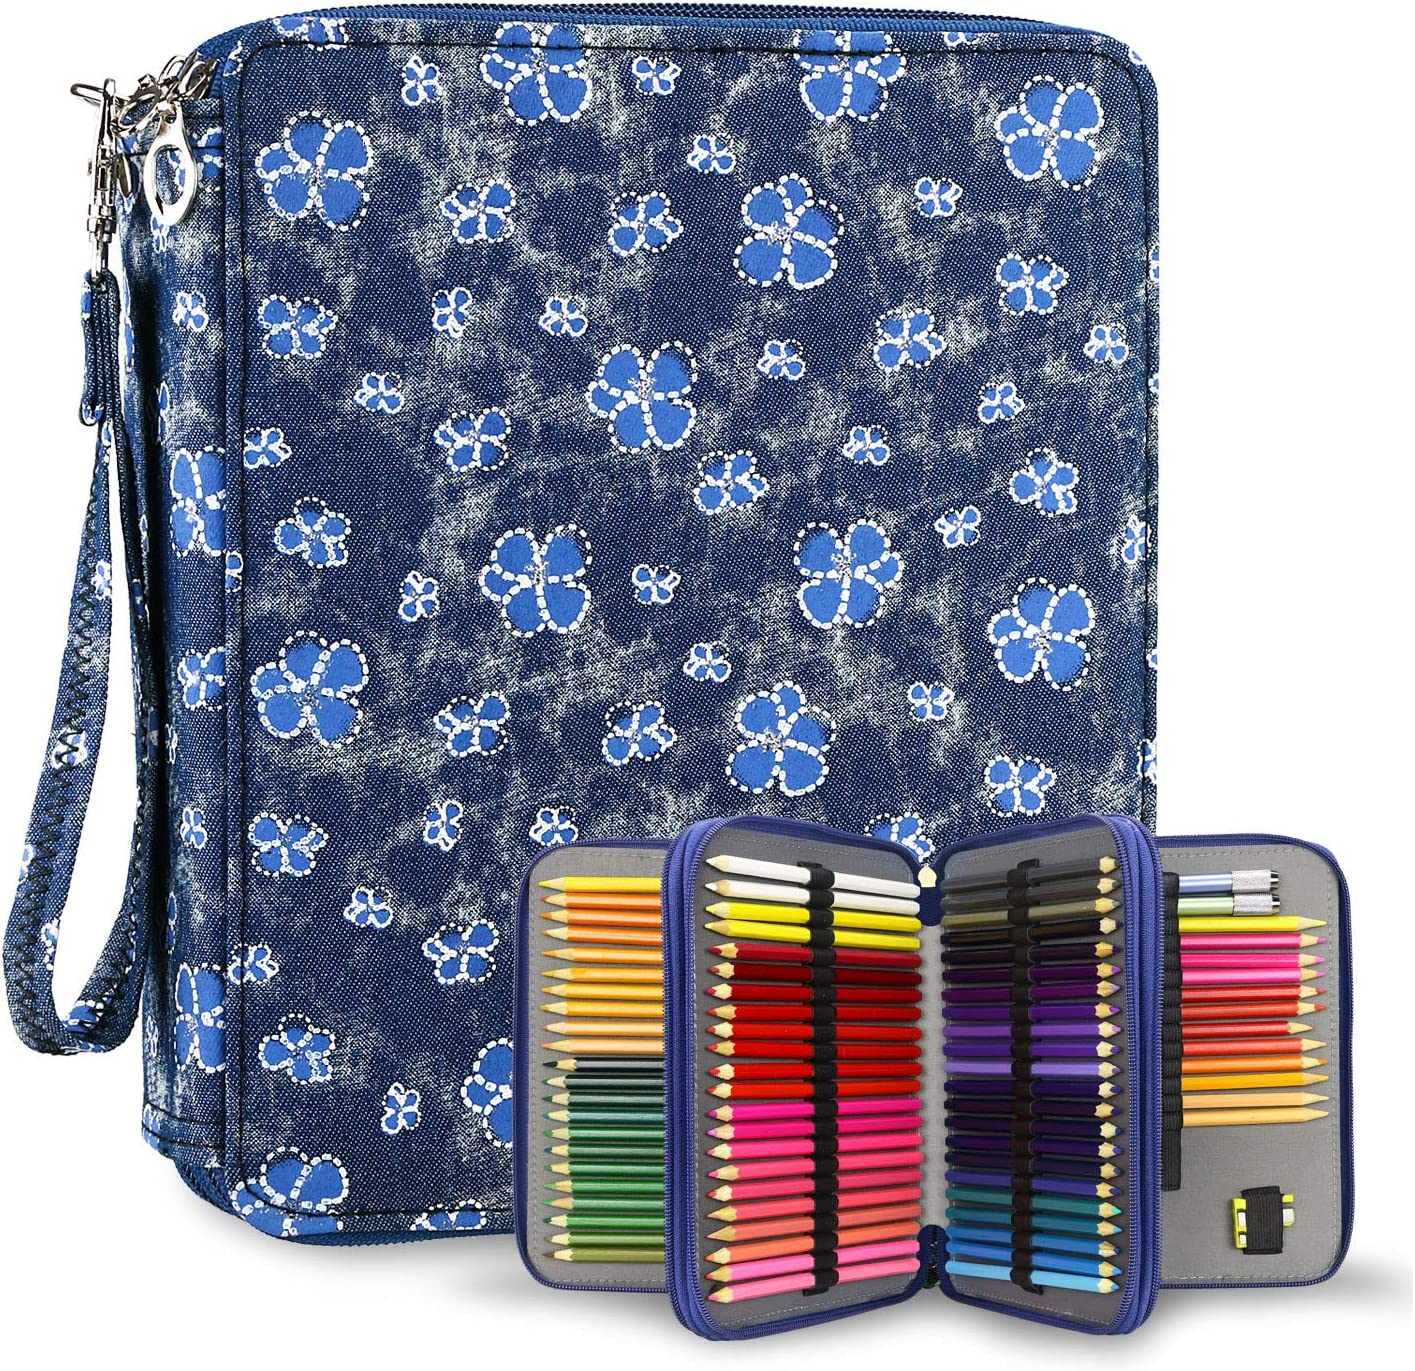 ROOCHL Colored Pencil Case 120 Slots Pencil Holder Pen Bag Large Capacity Pencil Organizer with Handle Strap Handy Colored Pencil Box with Printing Pattern Bowknot Jungle